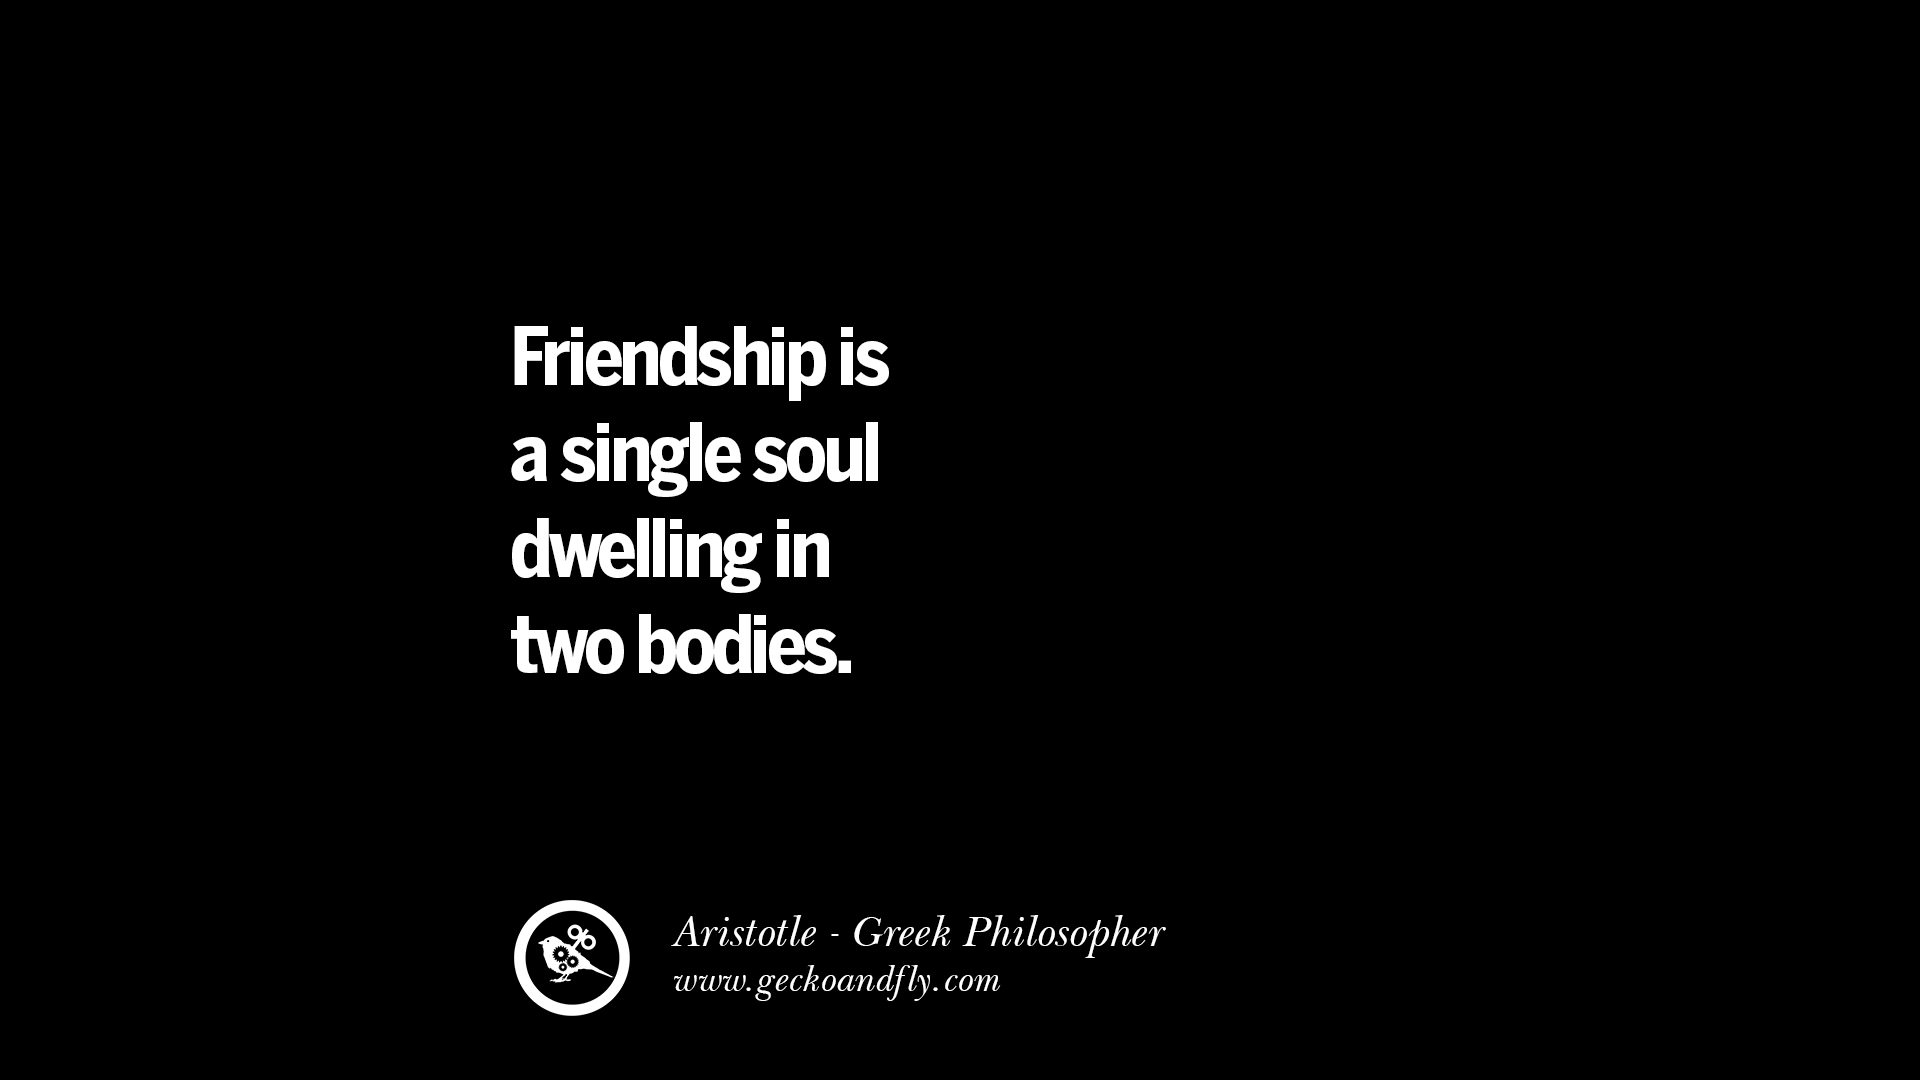 Good Quotes About Friendship 40 Famous Aristotle Quotes On Ethics Love Life Politics And